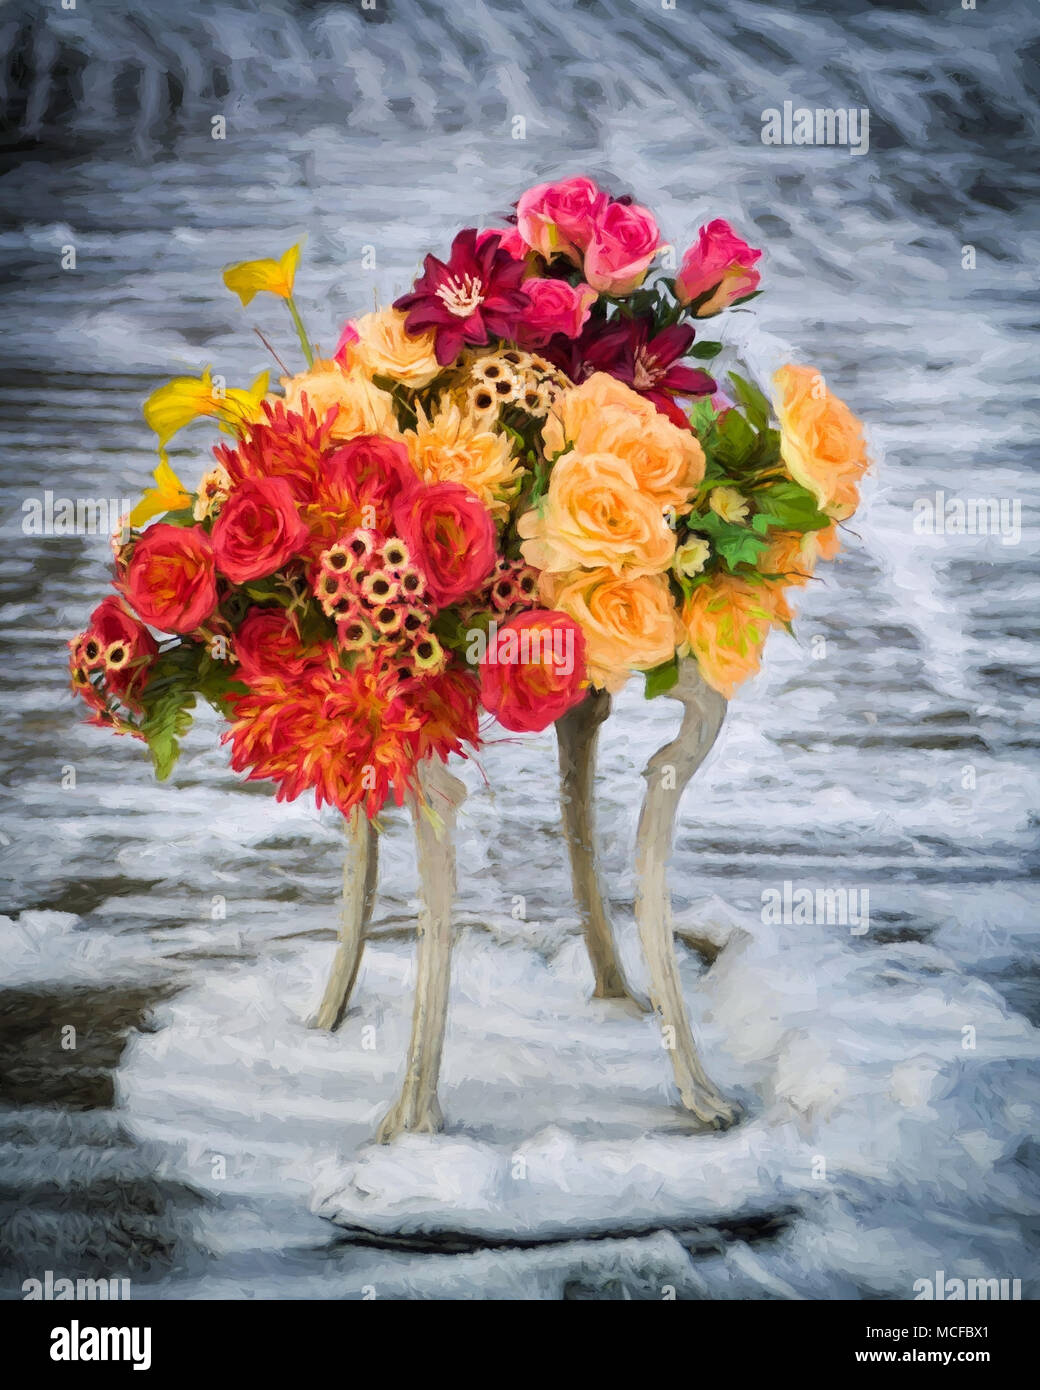 Painterly impressionistic digital art image of bright floral arrangement sat on small table on sidewalk cleared of snow, Krakow, Poland - Stock Image